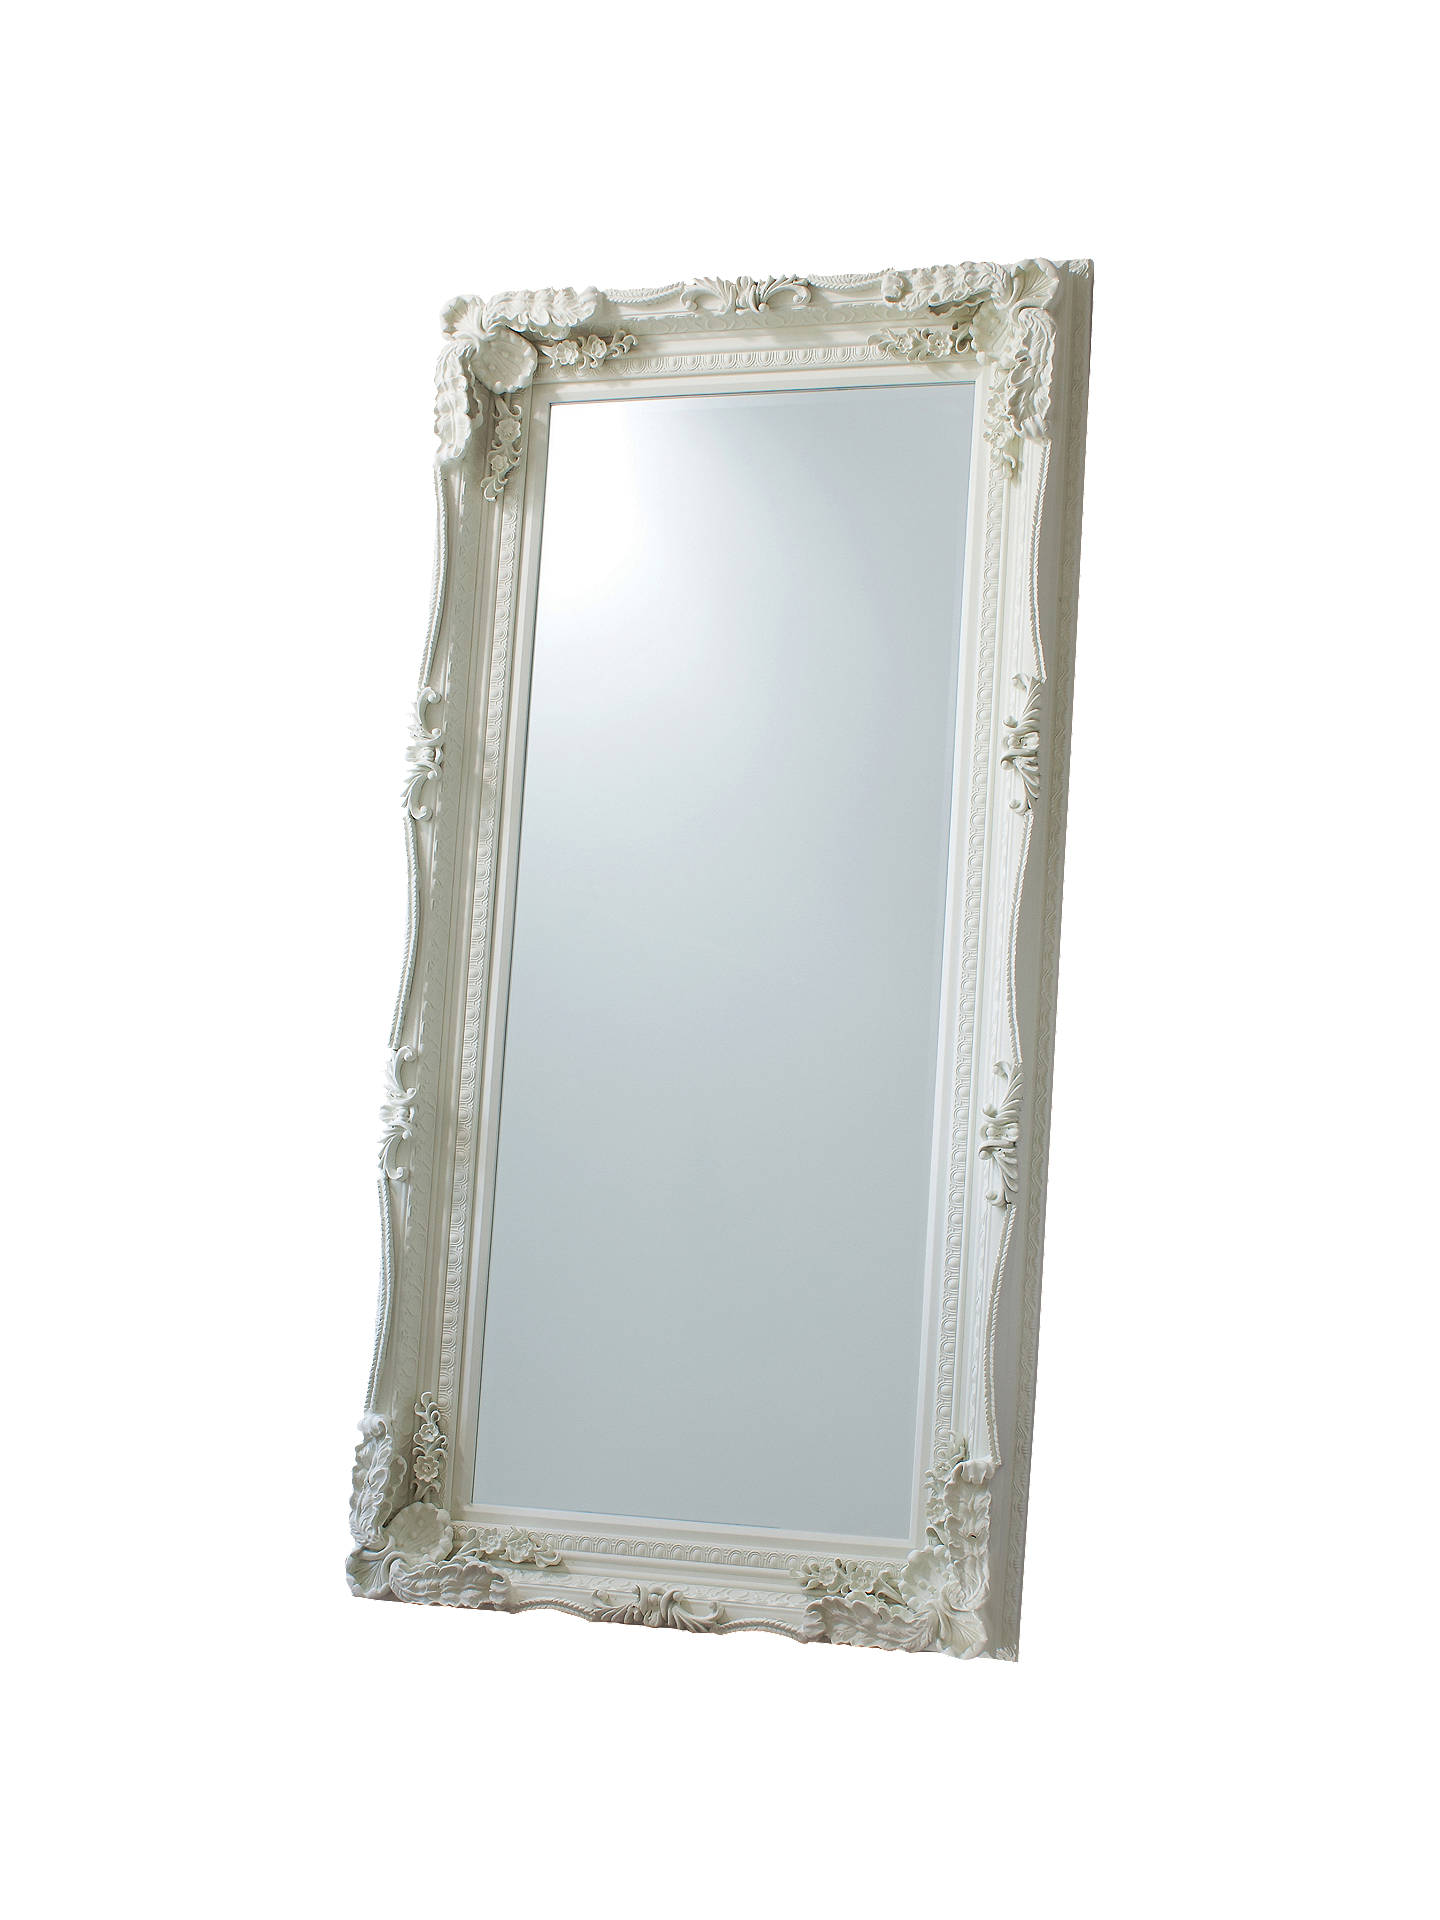 BuyCarved Louis Leaner Mirror, Cream, 176 x 89.5cm Online at johnlewis.com